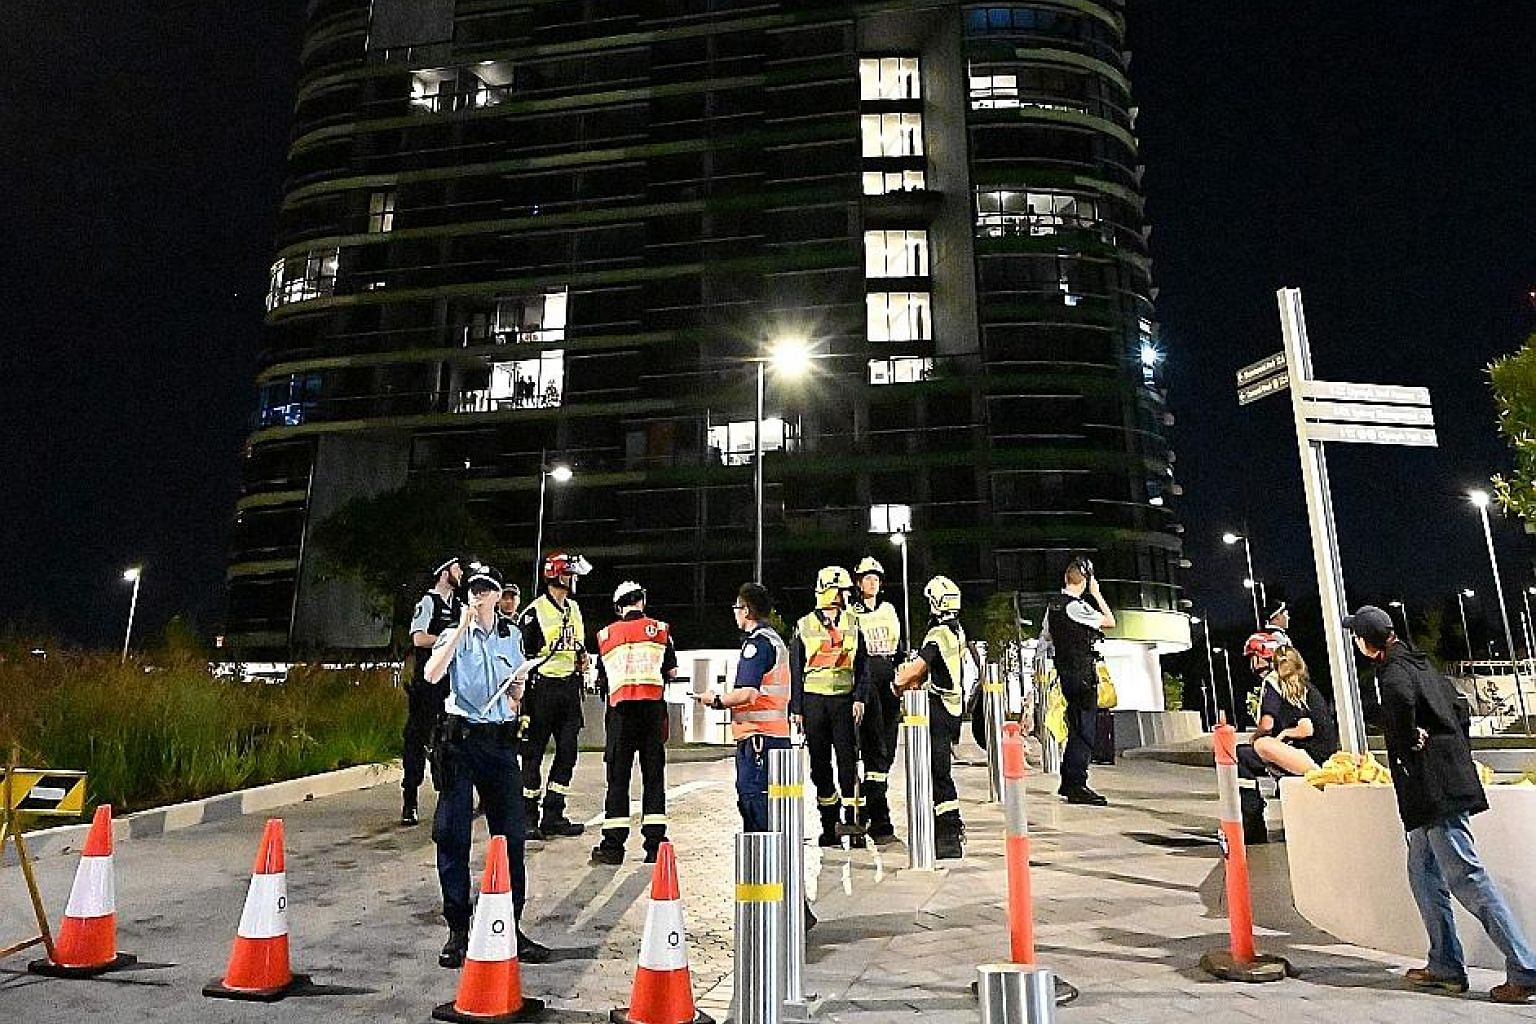 Police and firefighters in front of Opal Tower in Sydney on Christmas Day, after residents of the 36-storey building were evacuated the night before, when cracking sounds were heard.